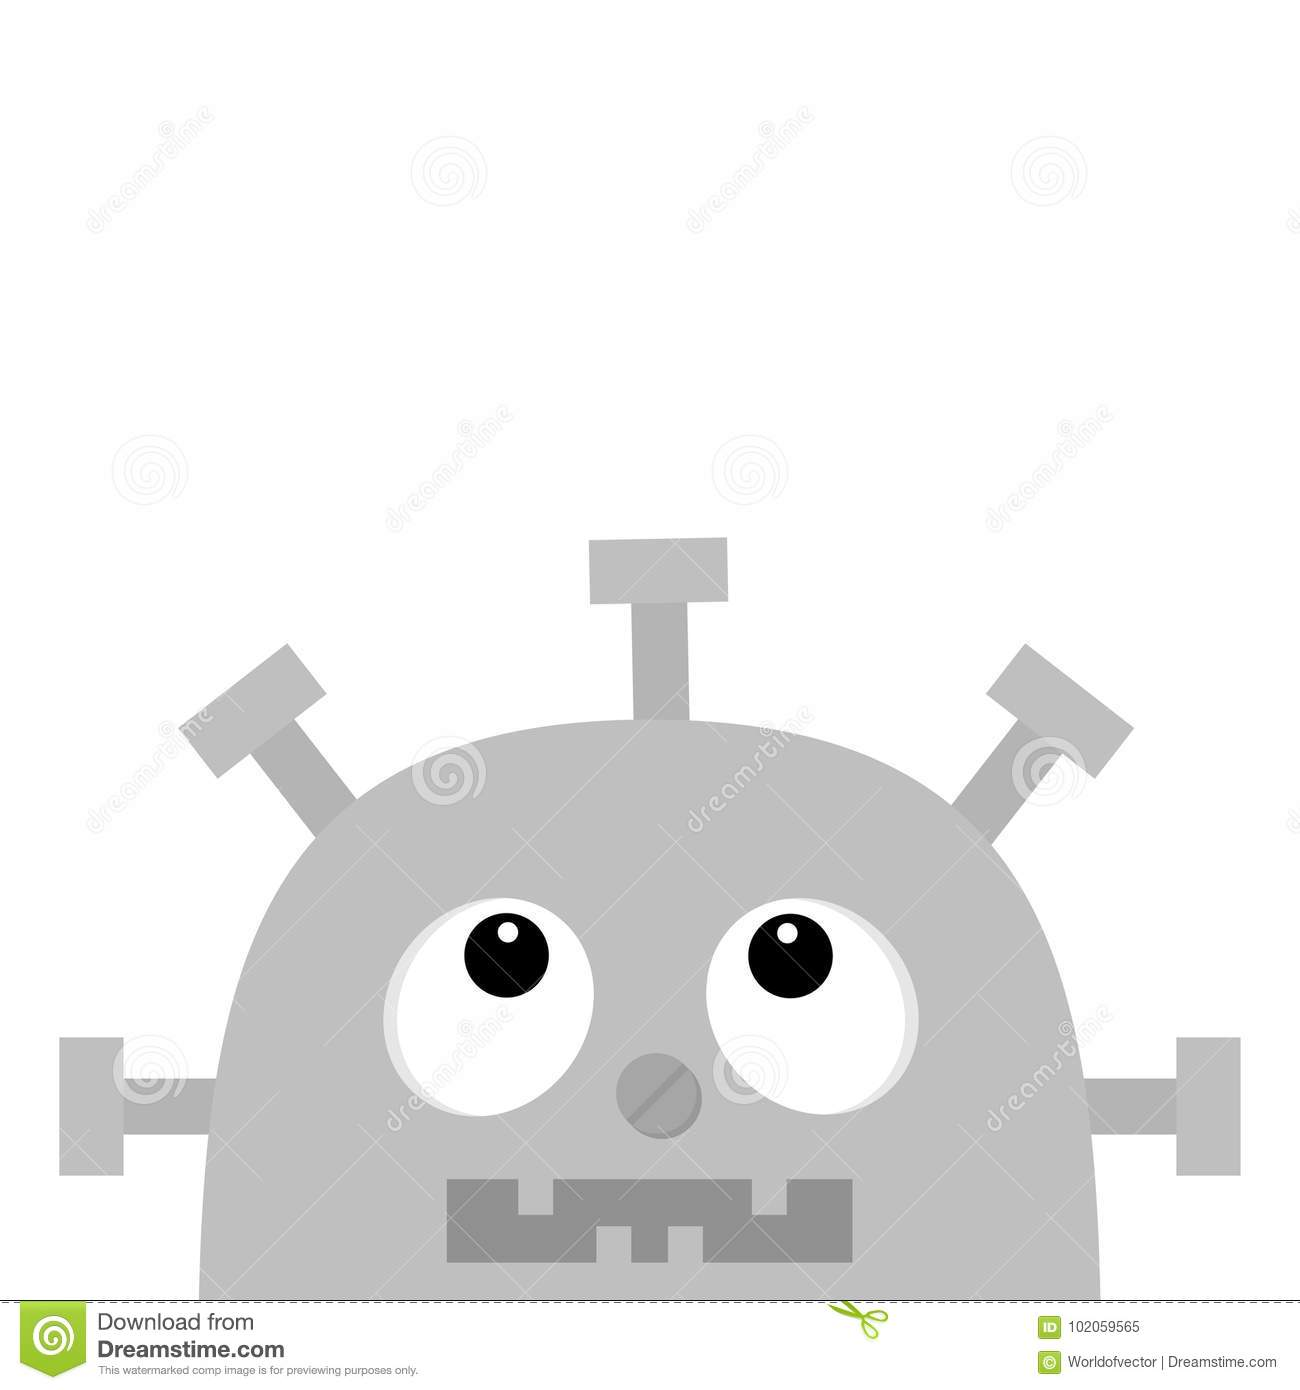 hight resolution of robot head face looking up nose clock heart diagram open mouth with tooth cute vintage cartoon character gray metal baby collection flat design